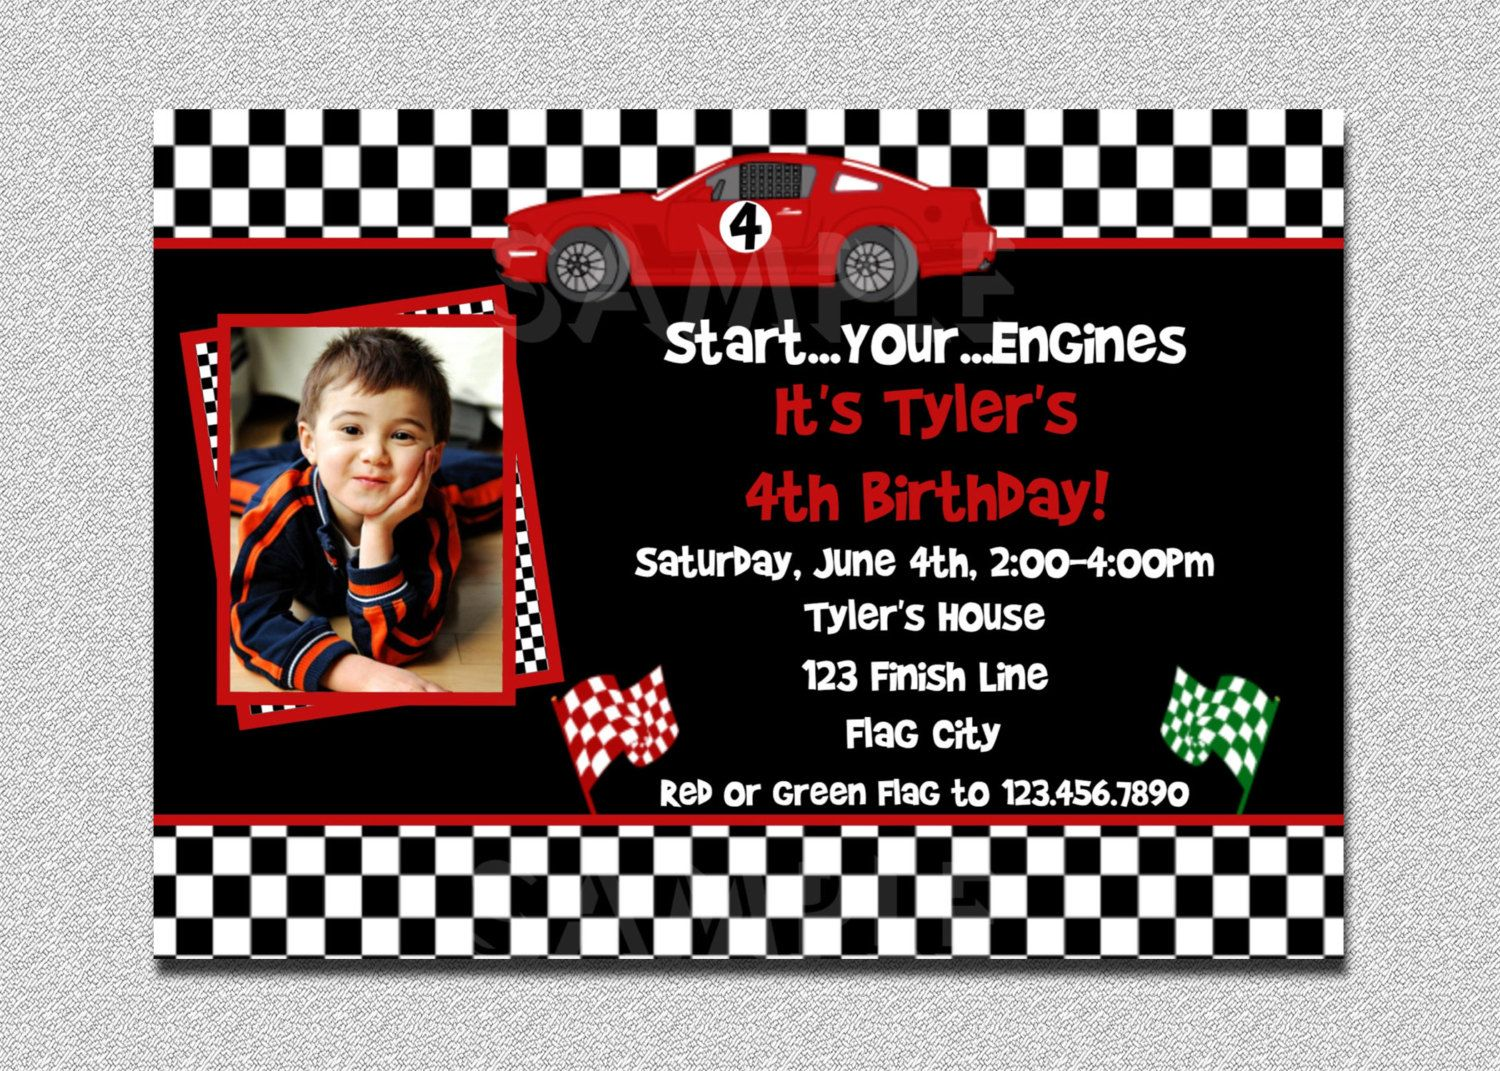 17 best images about cars birthday car birthday 17 best images about cars birthday car birthday cars birthday invitations and drag cars